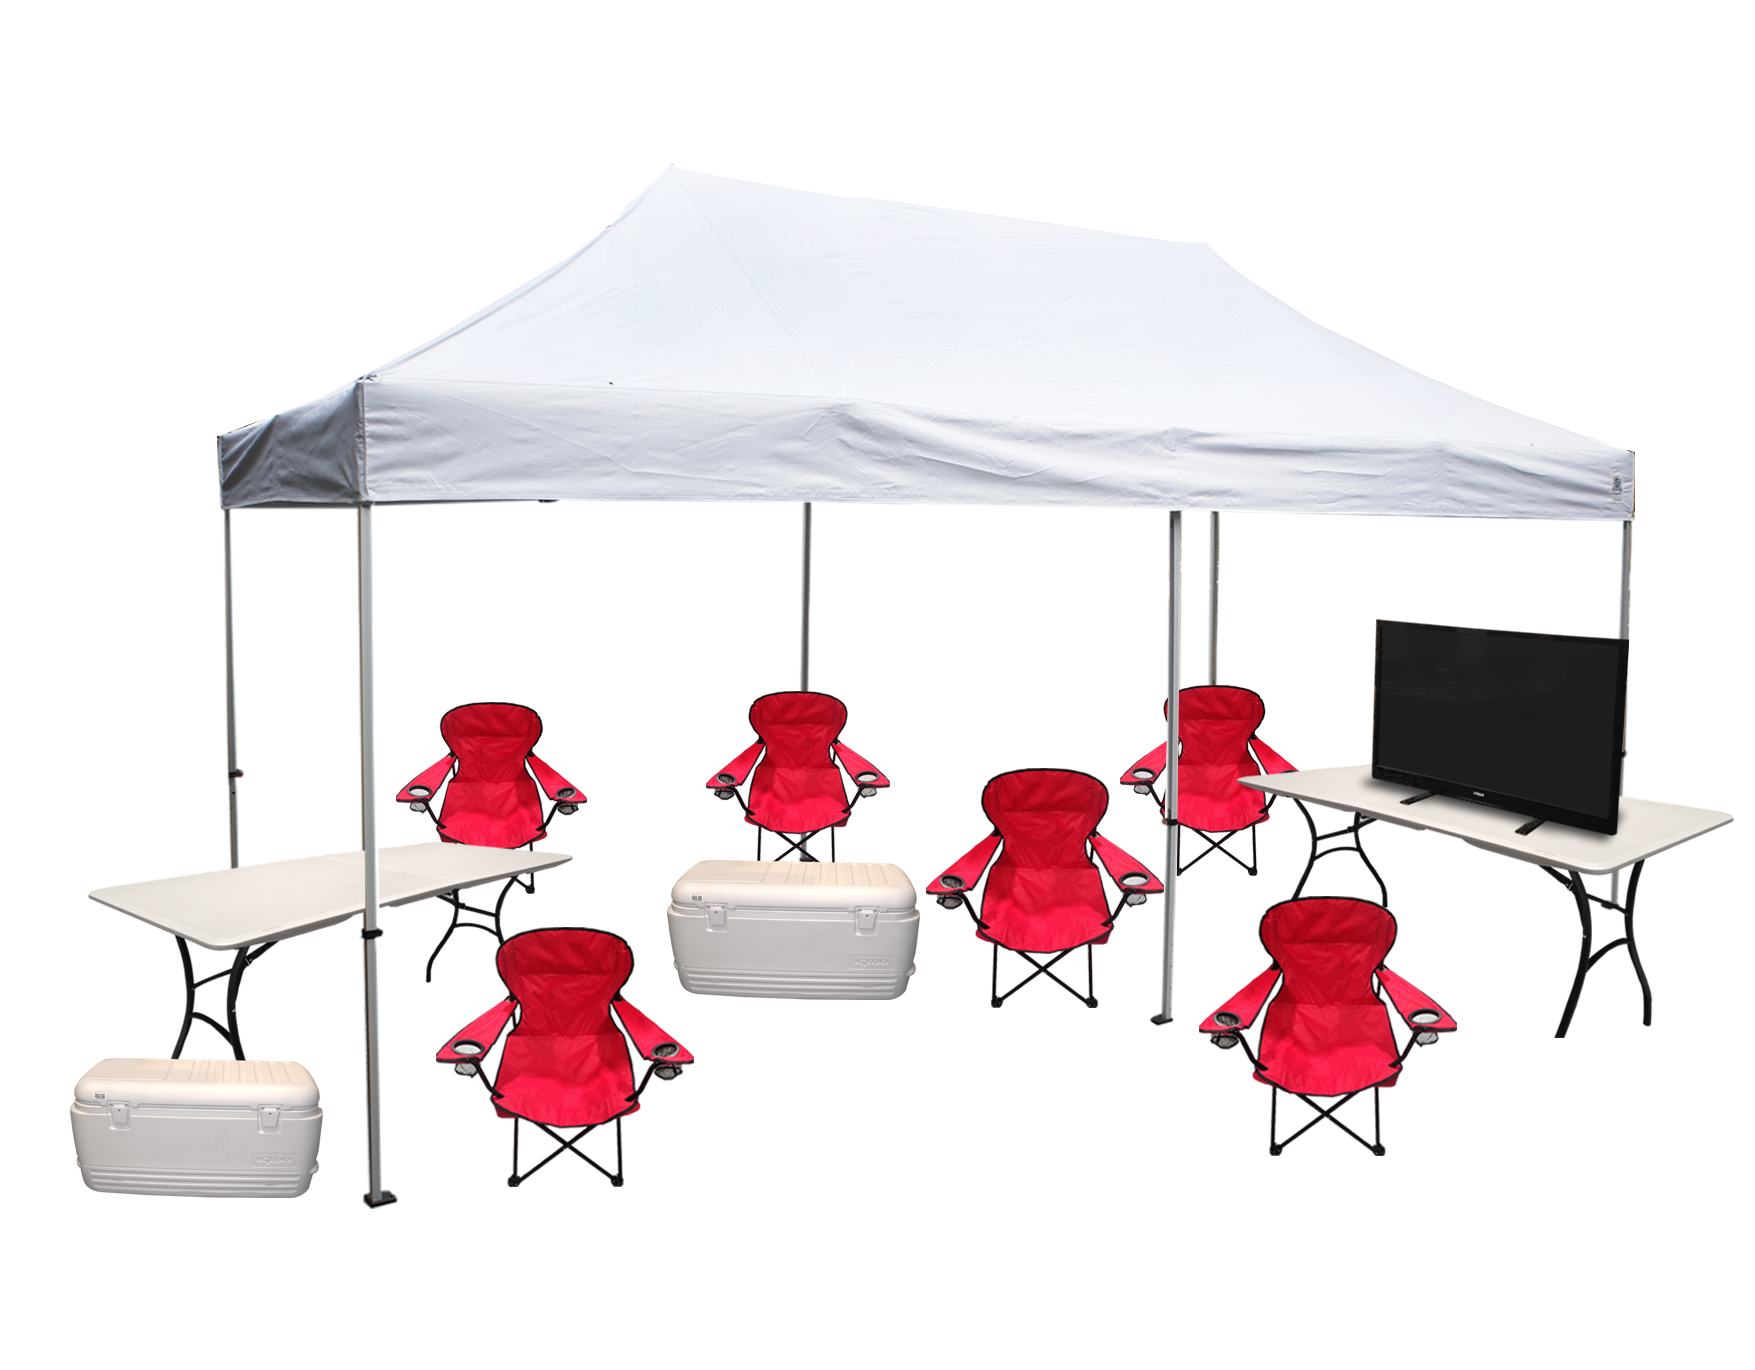 Tent/TV Setups  sc 1 th 198 : college tailgate tents - memphite.com